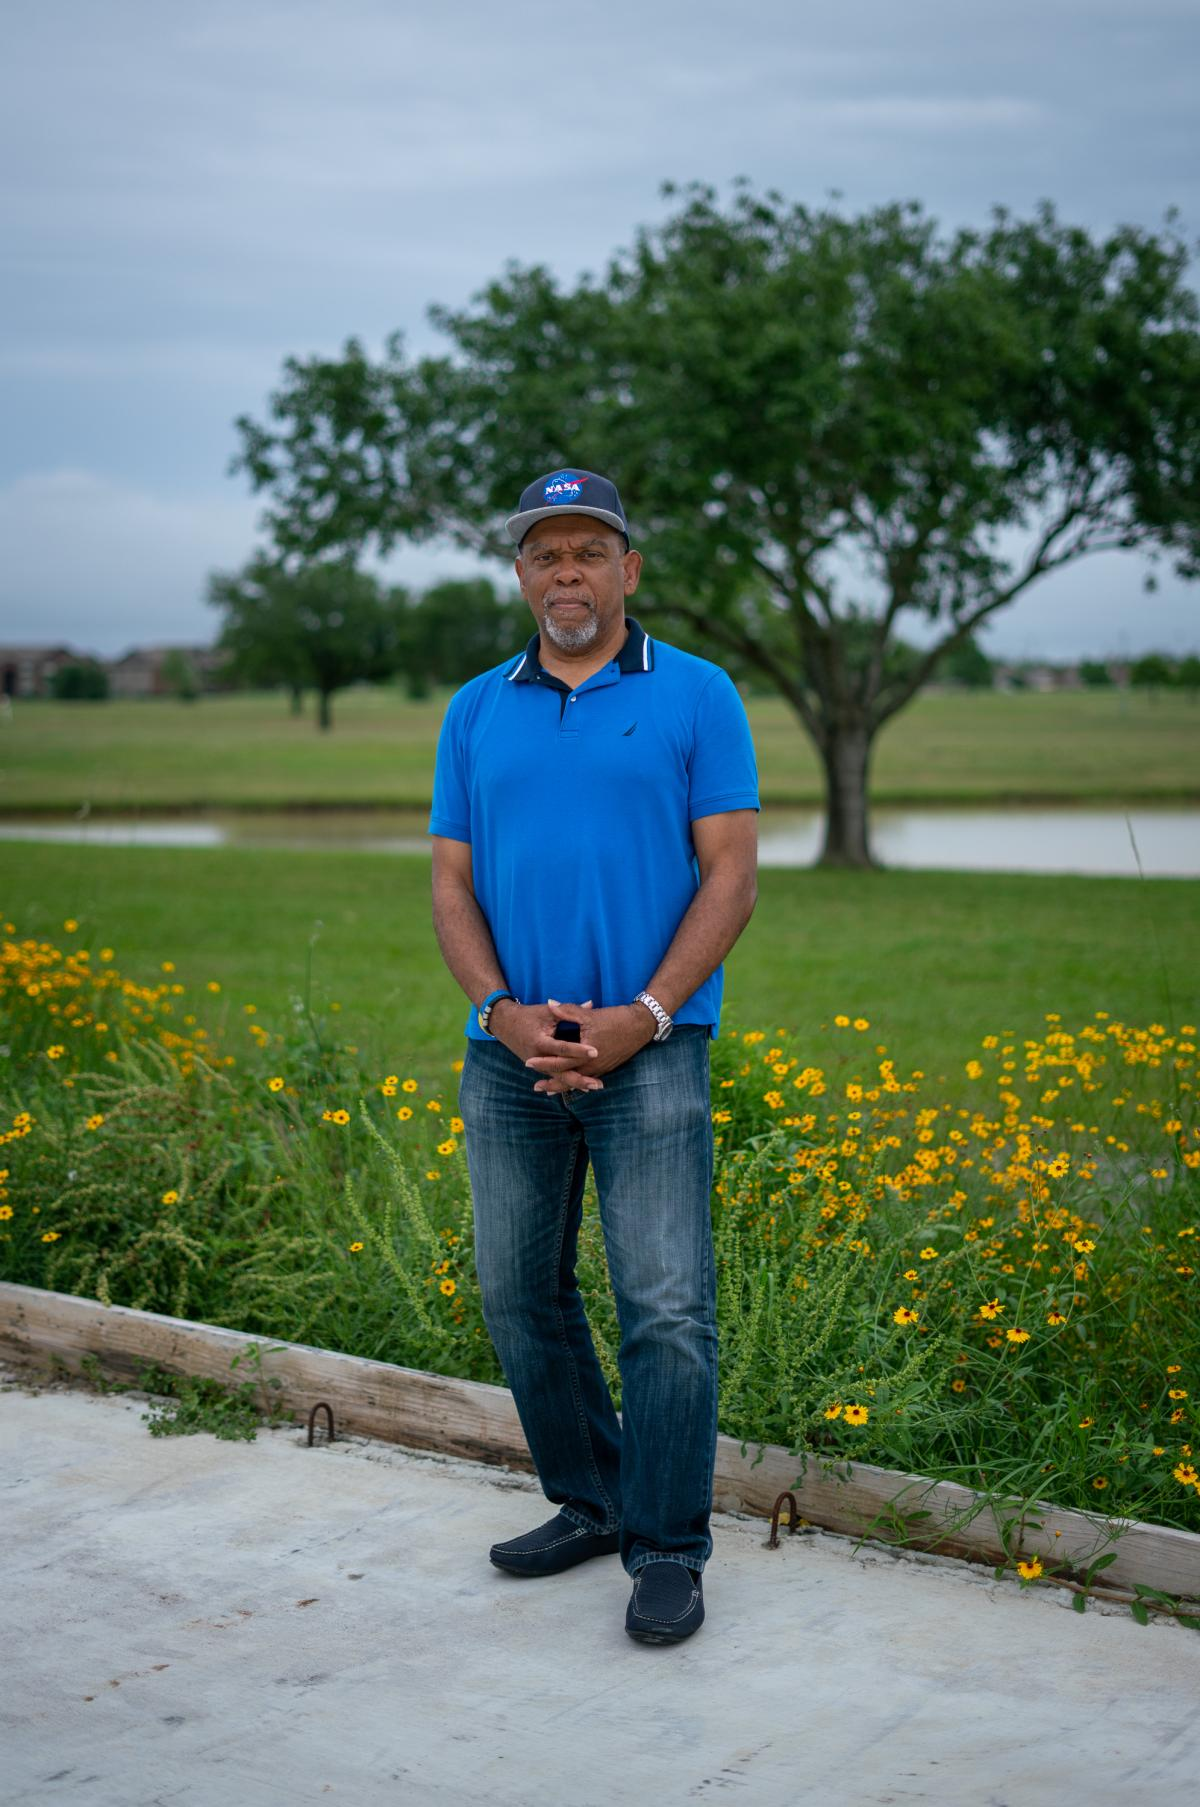 Former Port Arthur City Council member John Beard says FEMA is partly responsible for pushing Black residents out of the city. He says many Black homeowners have struggled to get the federal help they need to repair homes after hurricanes and floods.